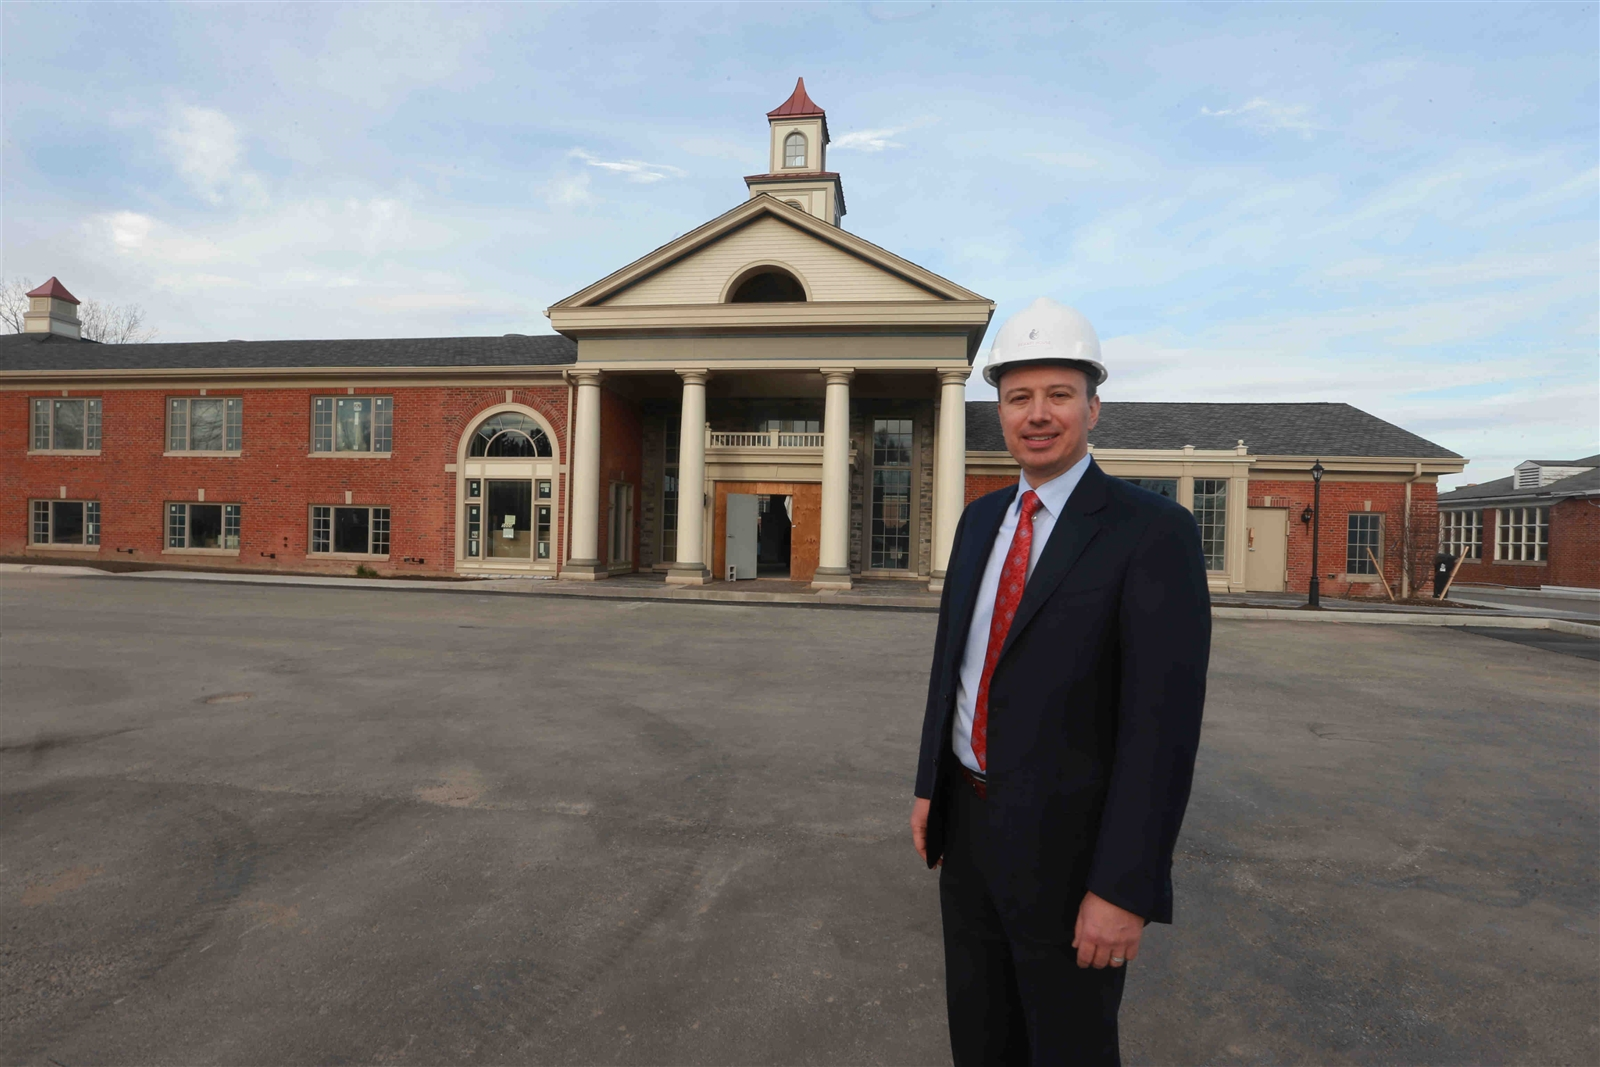 Paul Bohdan Iskalo, president, and CEO of Iskalo Development Corp. at the former Lord Amherst, now Reikart House.